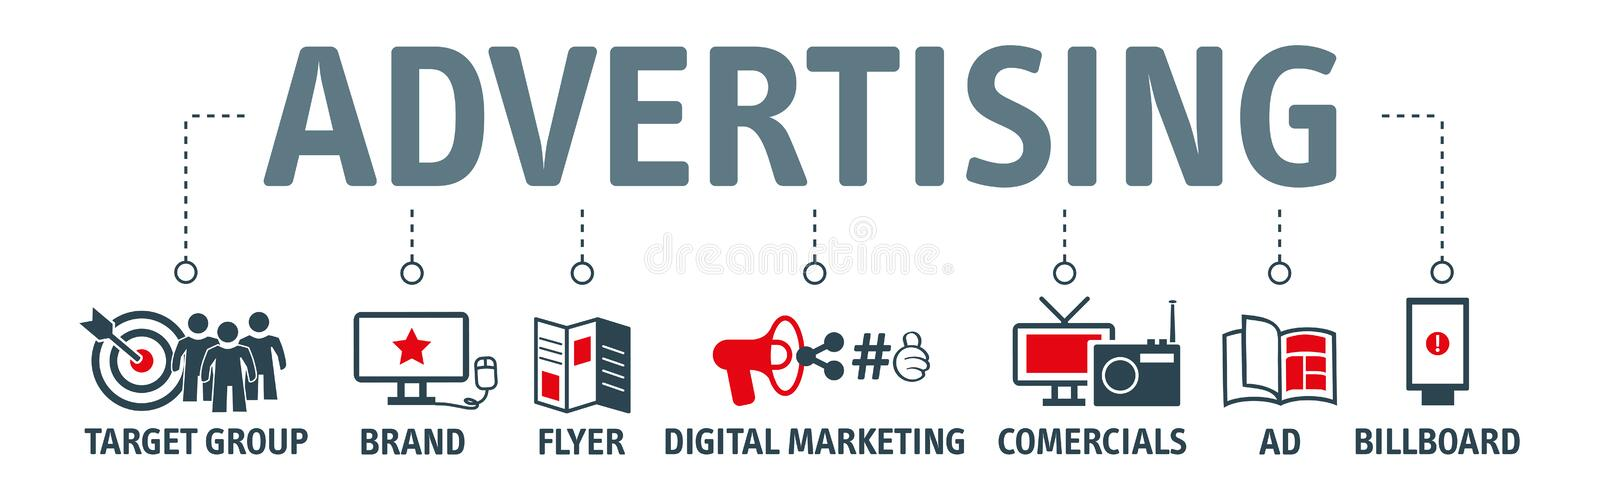 Advertising vector illustration concept with icons stock illustration